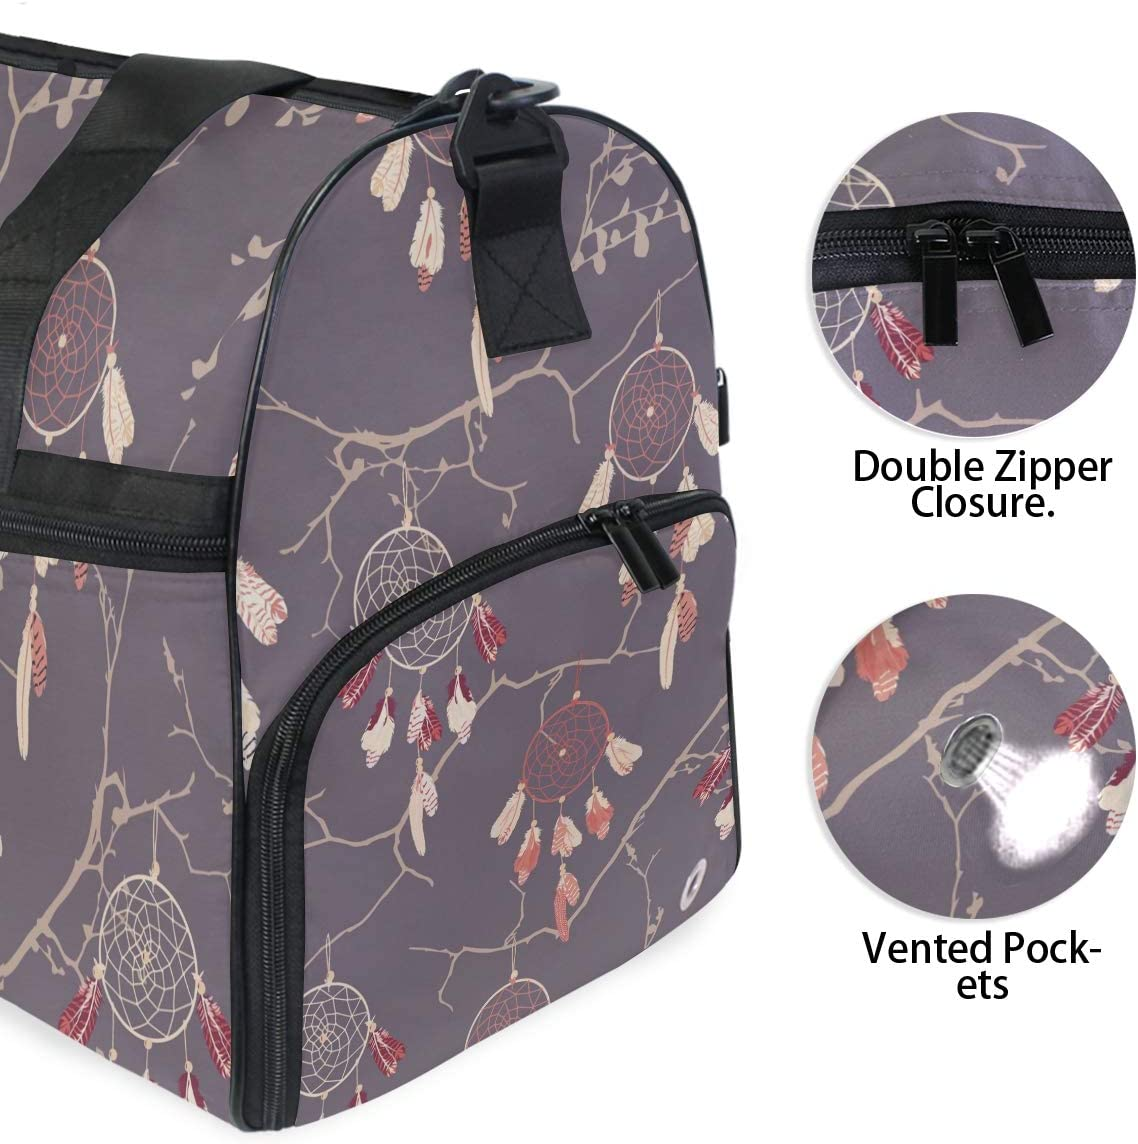 WIHVE Travel Duffel Bag Dream Catchers Gym Bag With Shoes Compartment